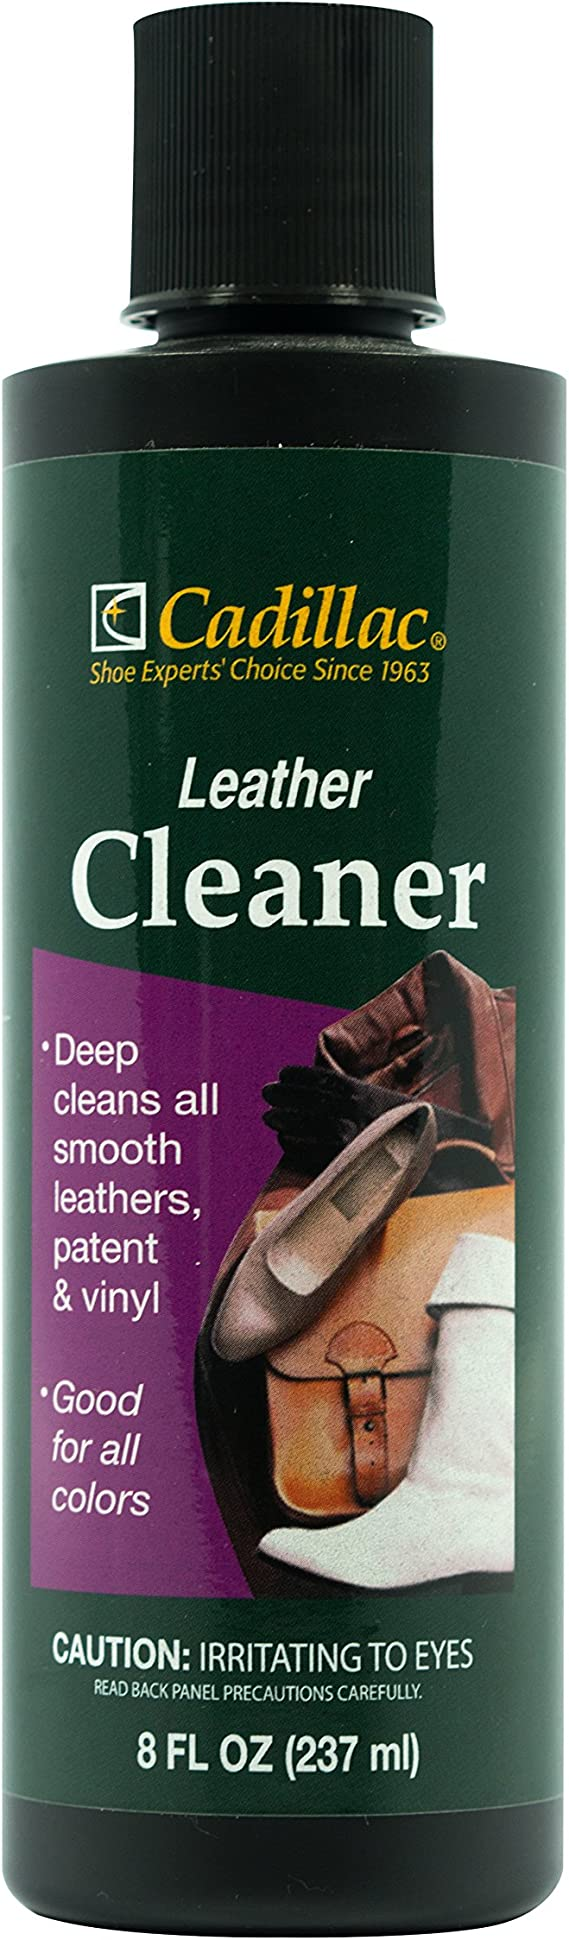 Cadillac Leather Cleaner - Great for Shoes